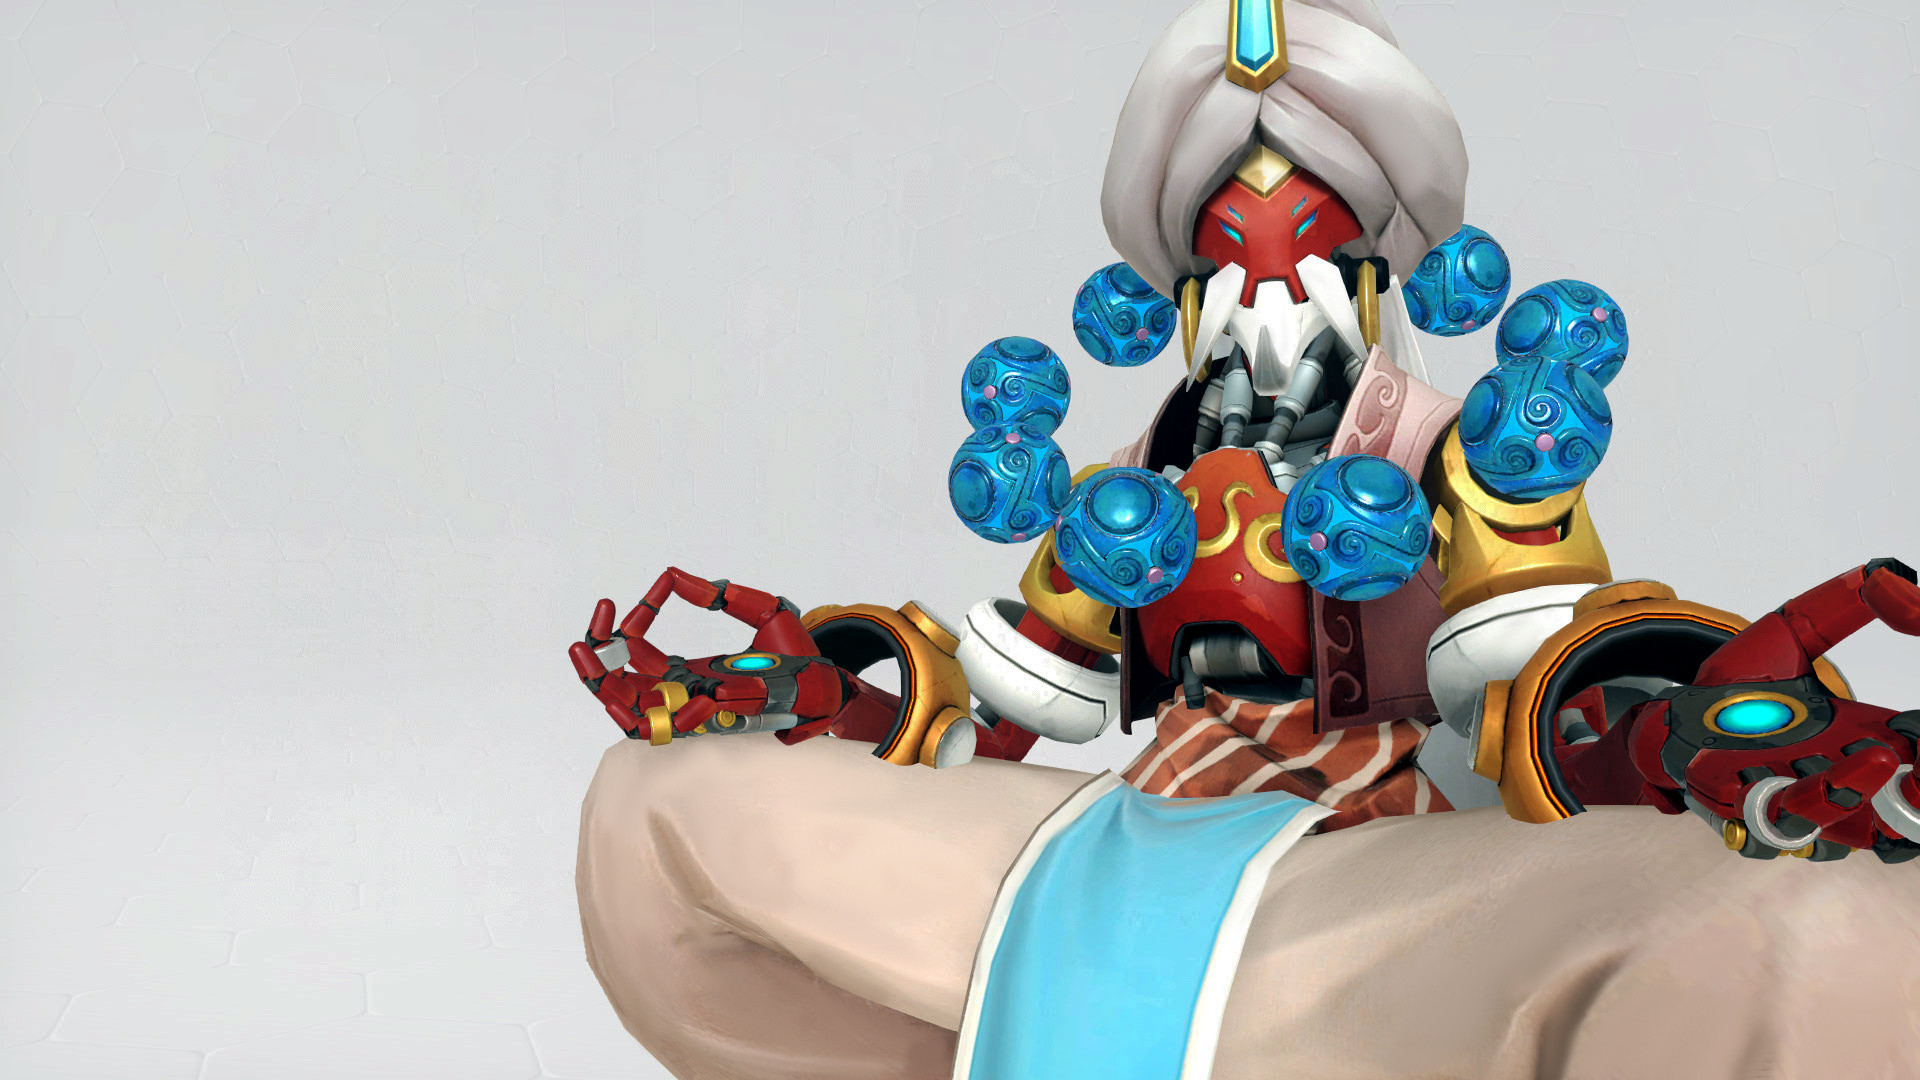 1920x1080 ... Overwatch-Zenyatta Wallpaper  by bedobaho